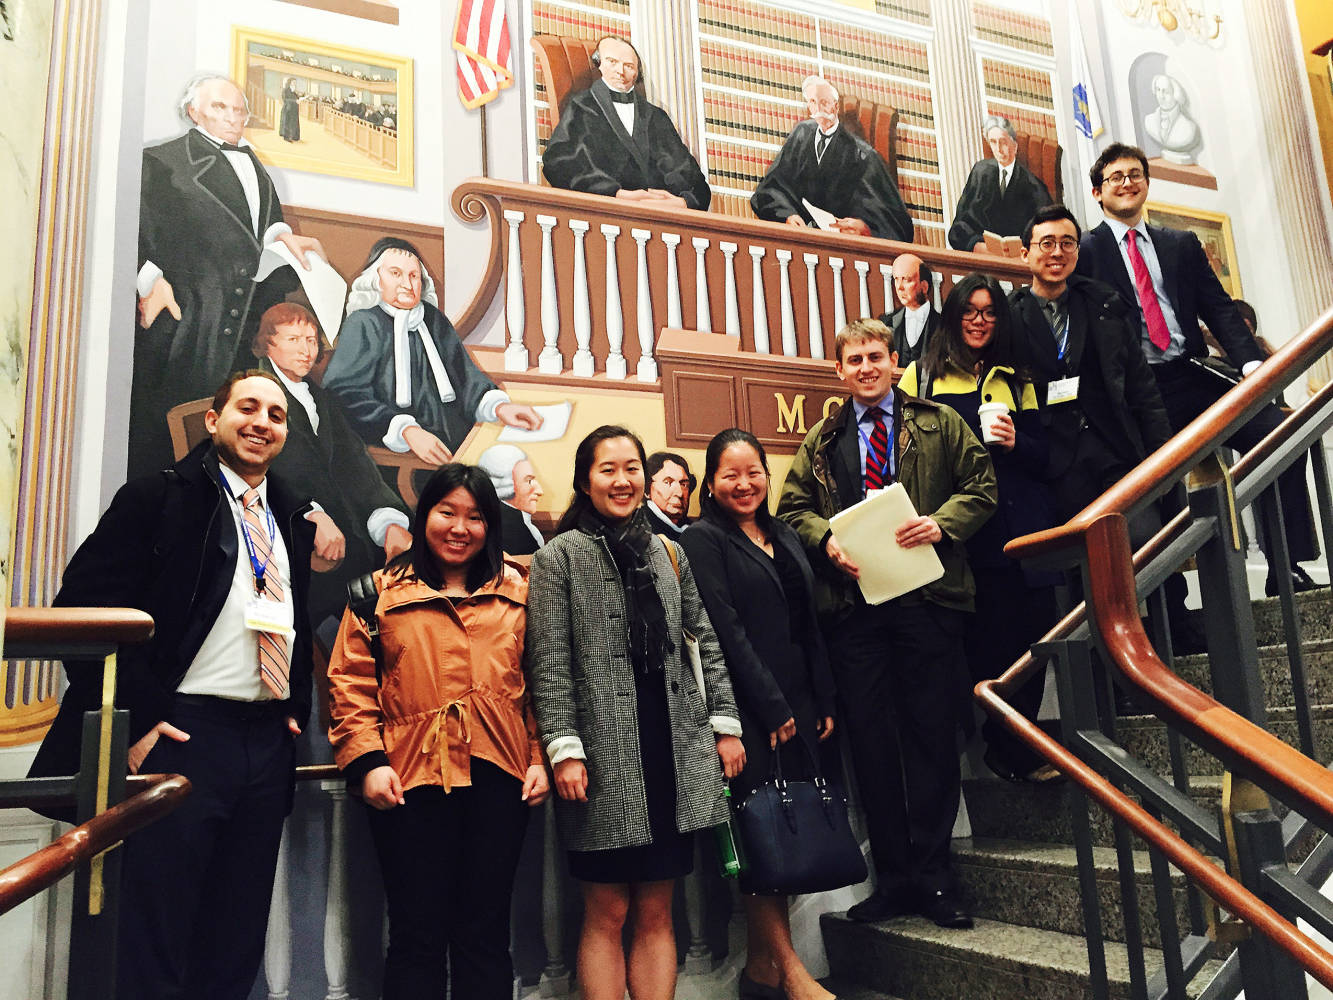 Students pose for photo on stairs after volunteering with Volunteer Lawyers Project at the Massachusetts Continuing Legal Education center